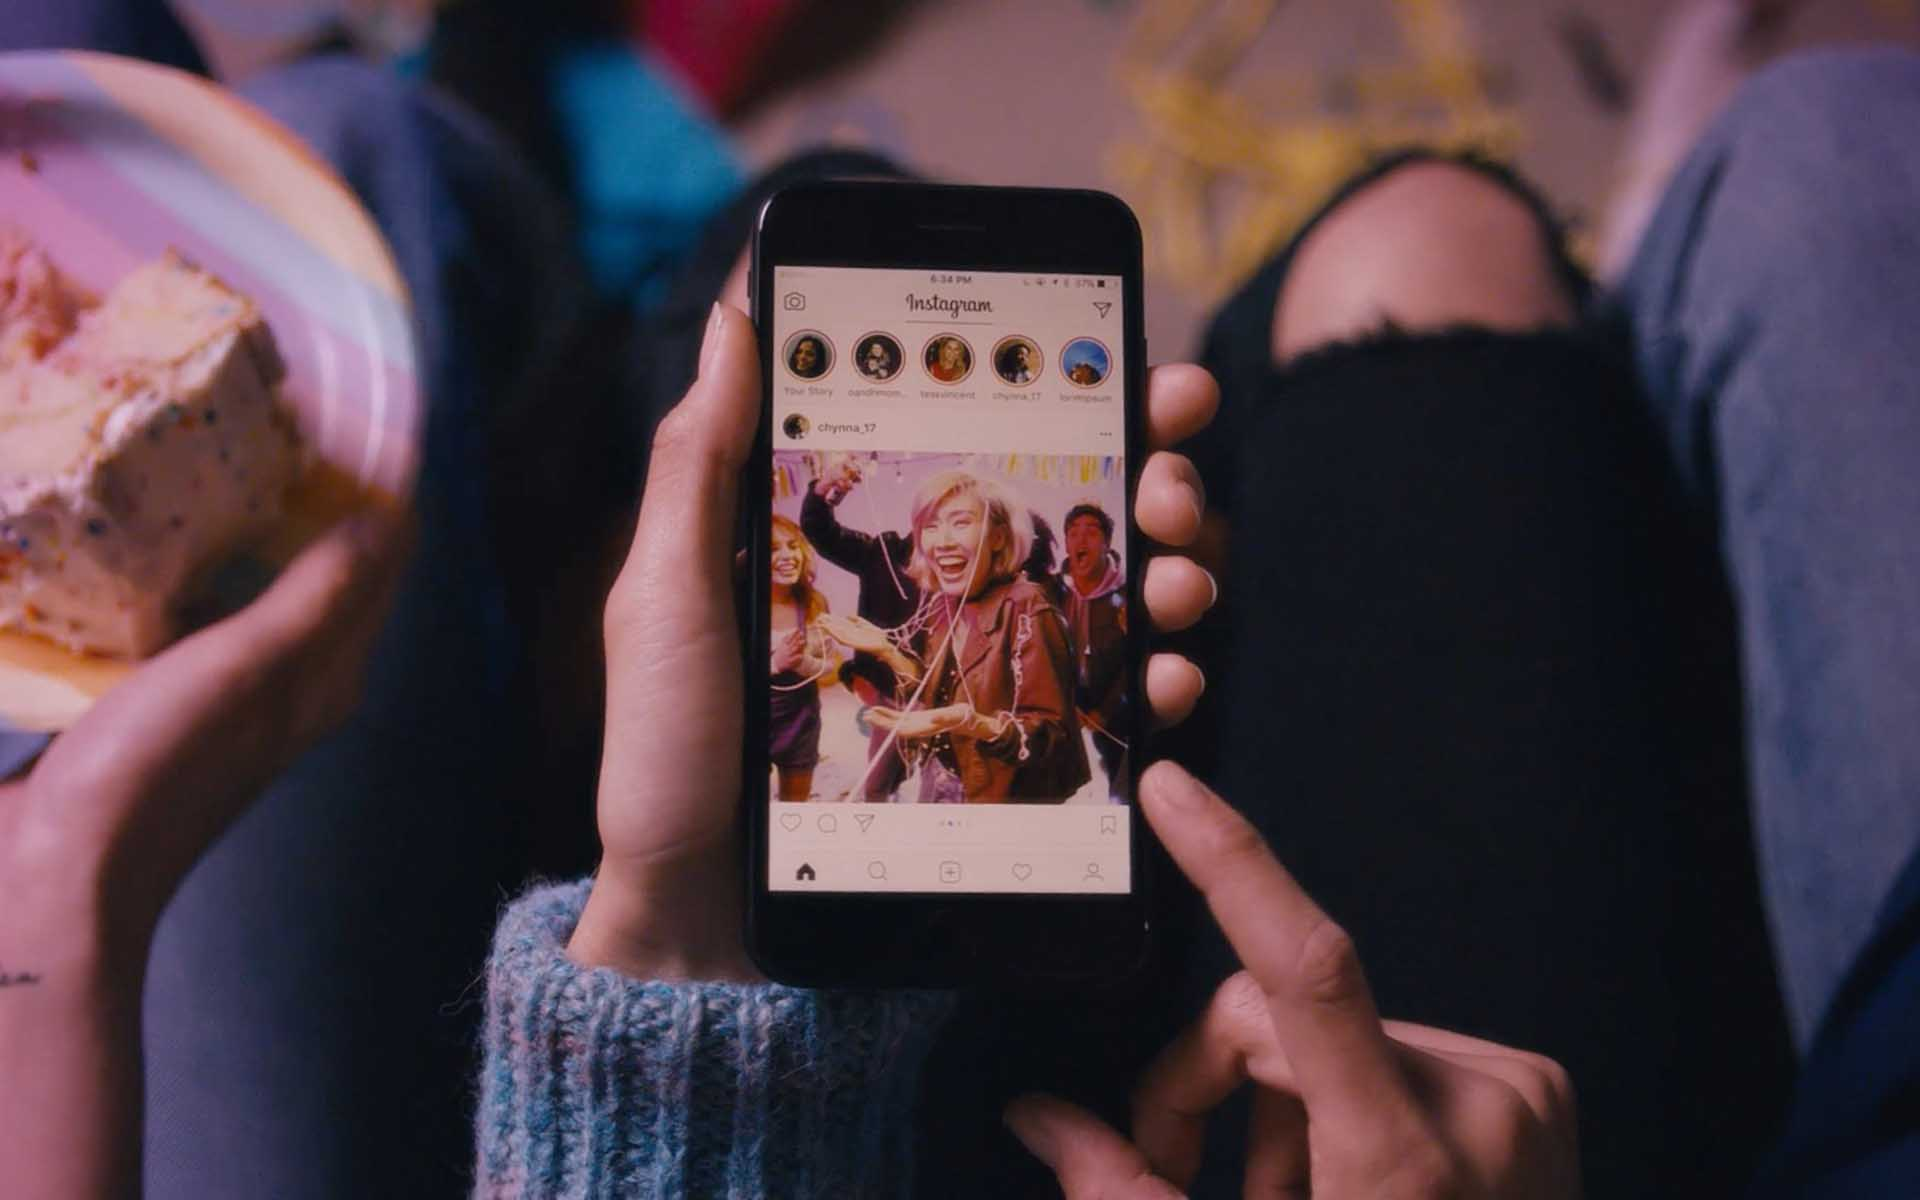 Instagram Bloggers to Receive Cryptocurrency for Advertising - MediaToken Platform Now Accepting Applications